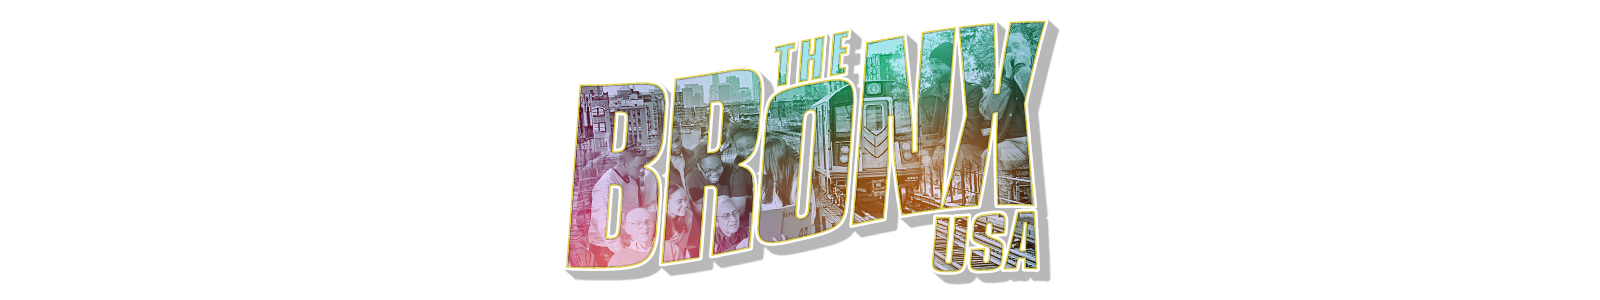 the-bronx-usa-logo-1600x300.jpg